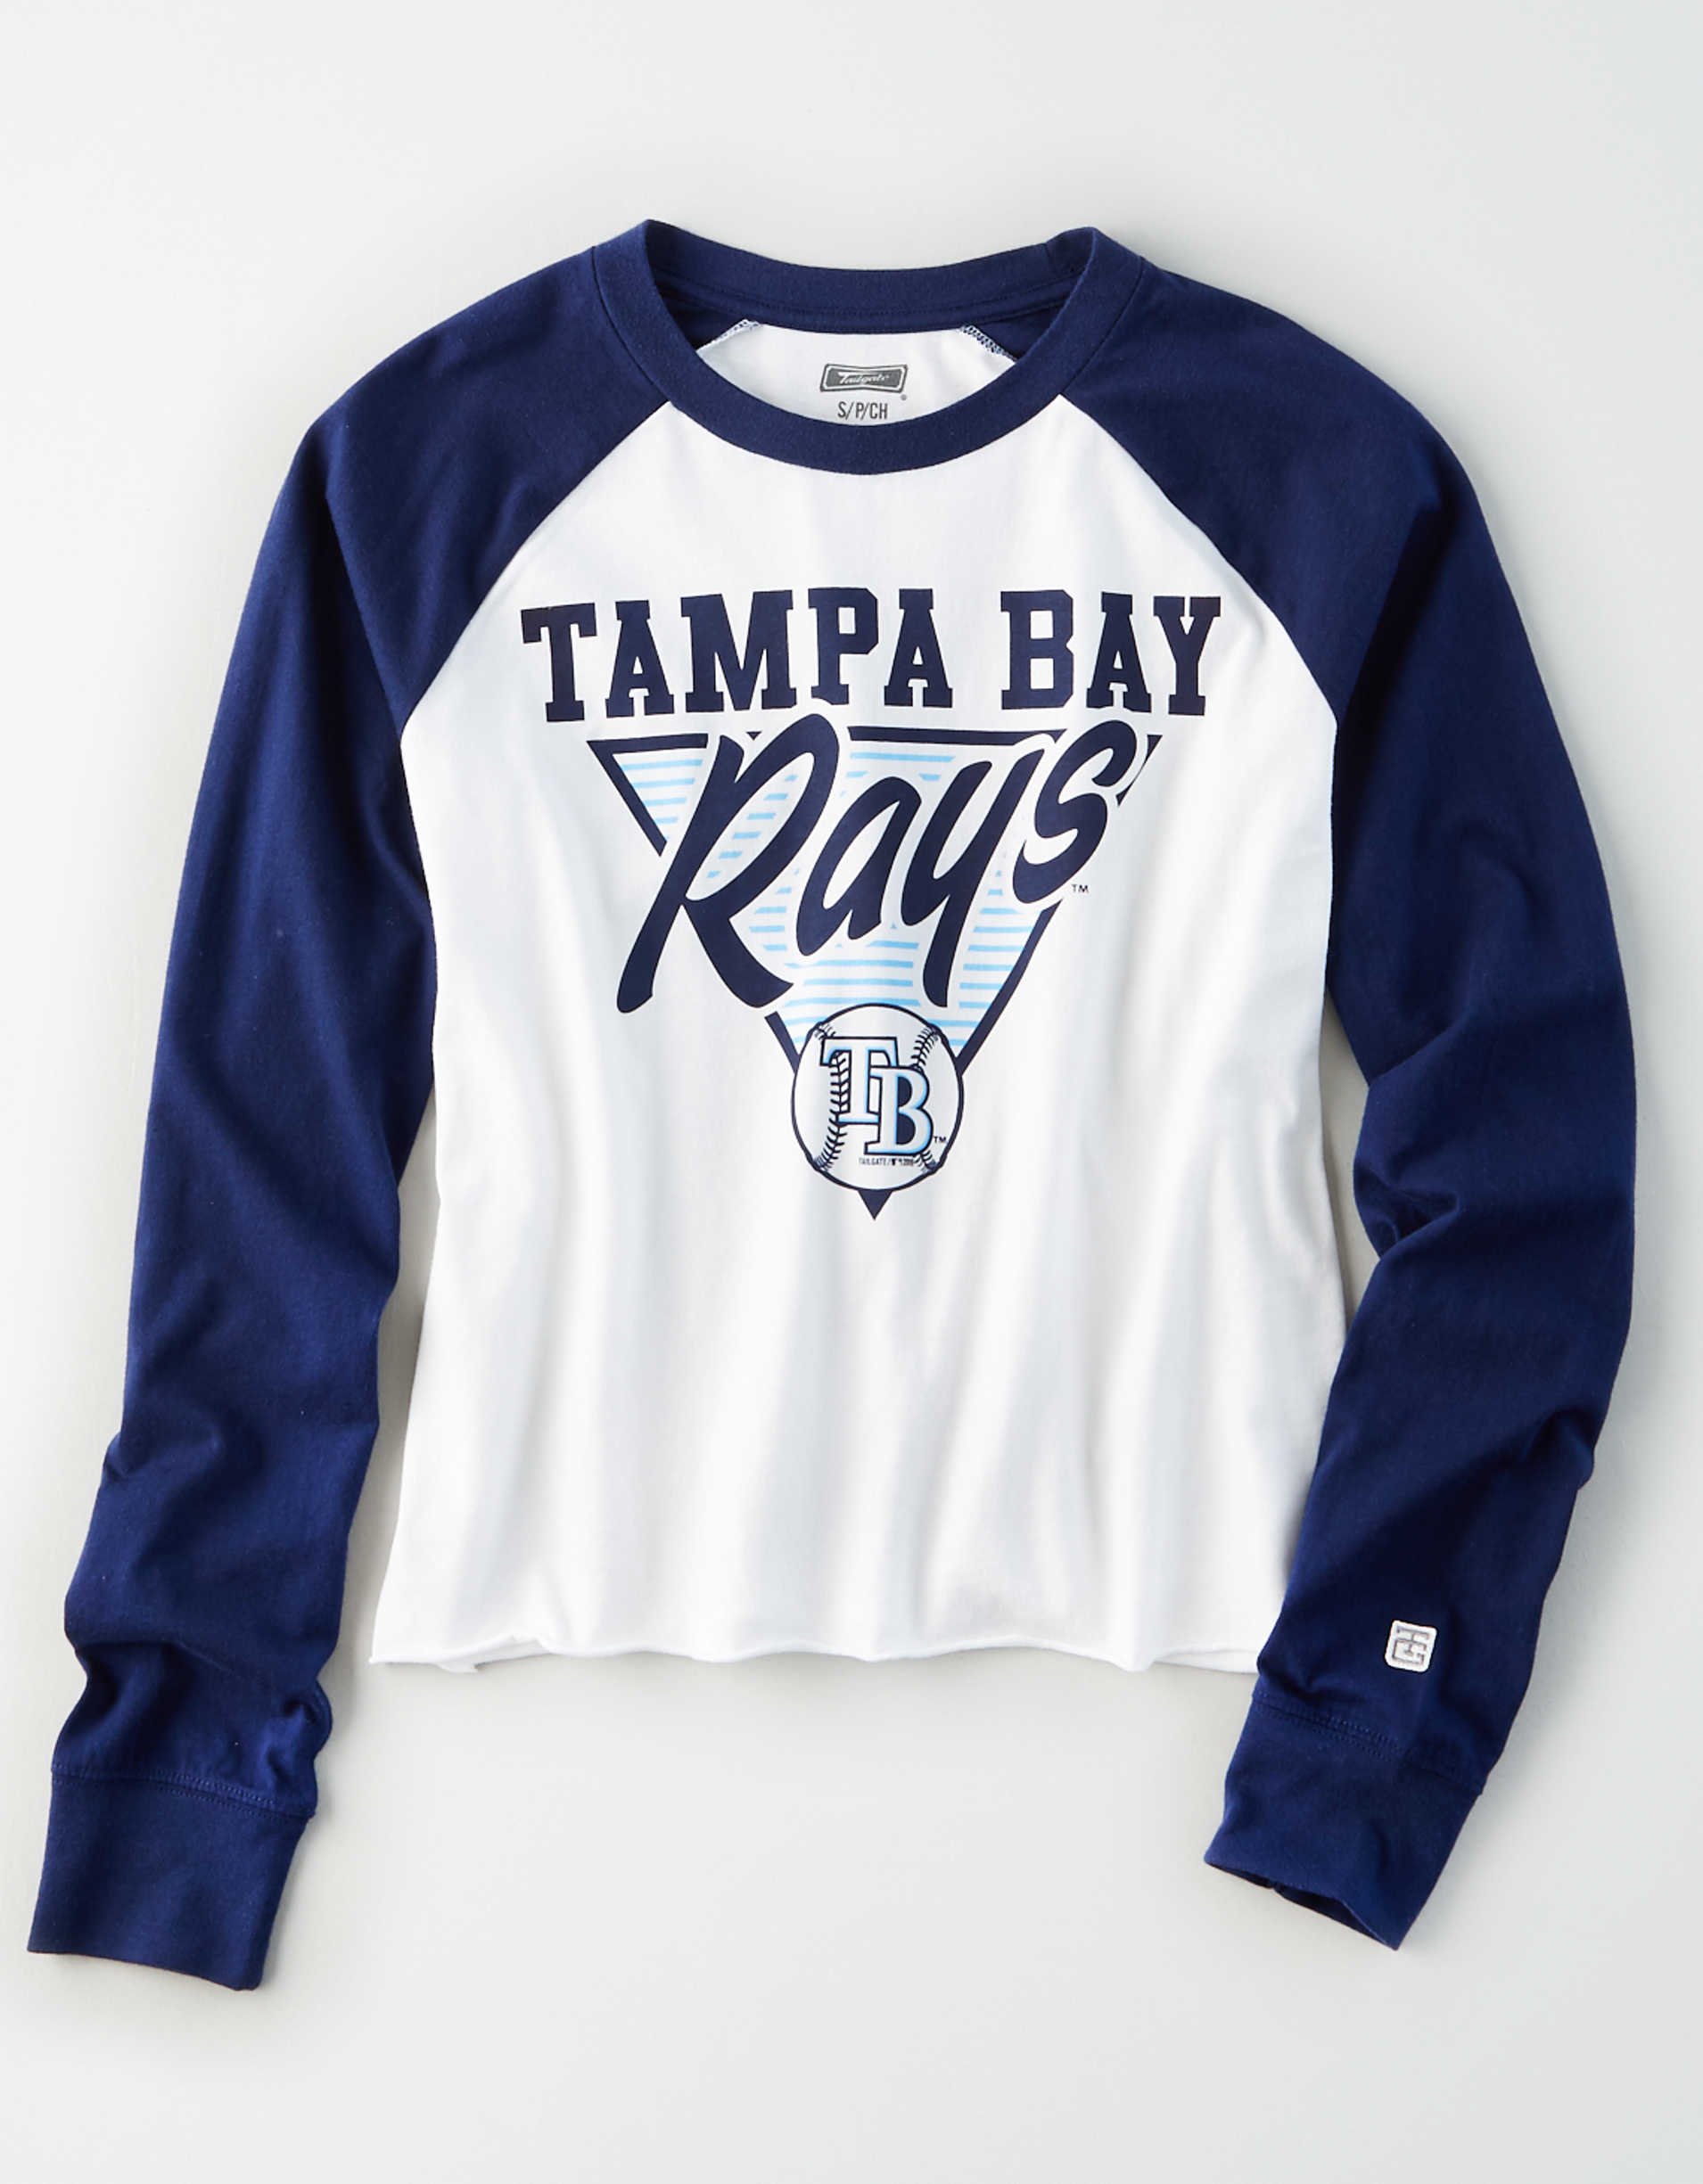 Tailgate Women's Tampa Bay Rays Baseball Shirt